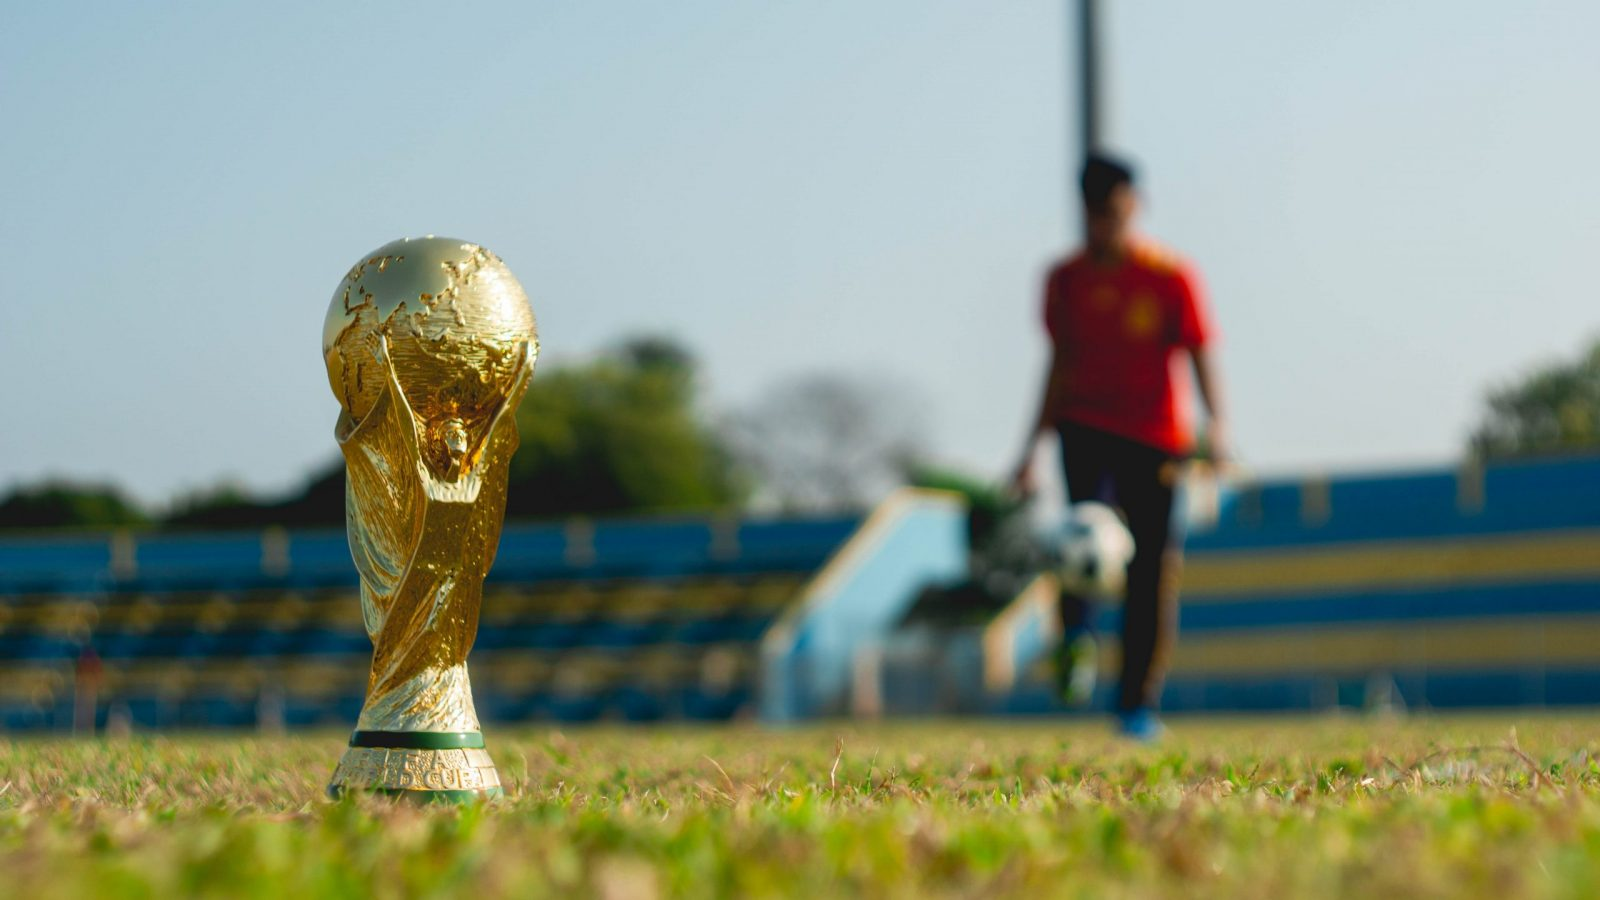 FIFA Schedules 4 Matches Per Day for Group Stage of World Cup 2022 in Qatar